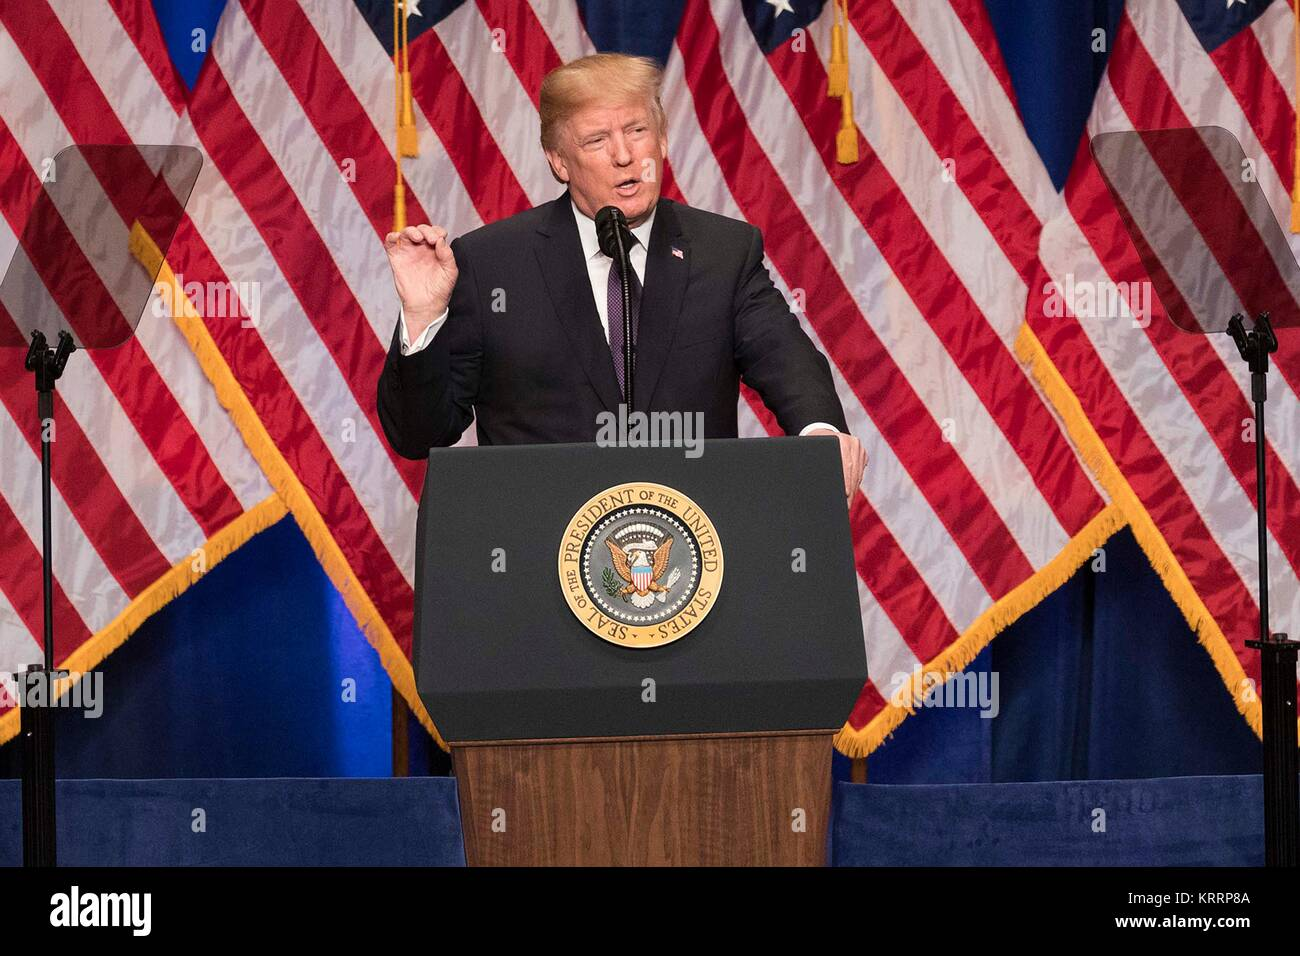 U.S. President Donald Trump speaks during the unveiling of his national security strategy December 18, 2017 in Washington, - Stock Image